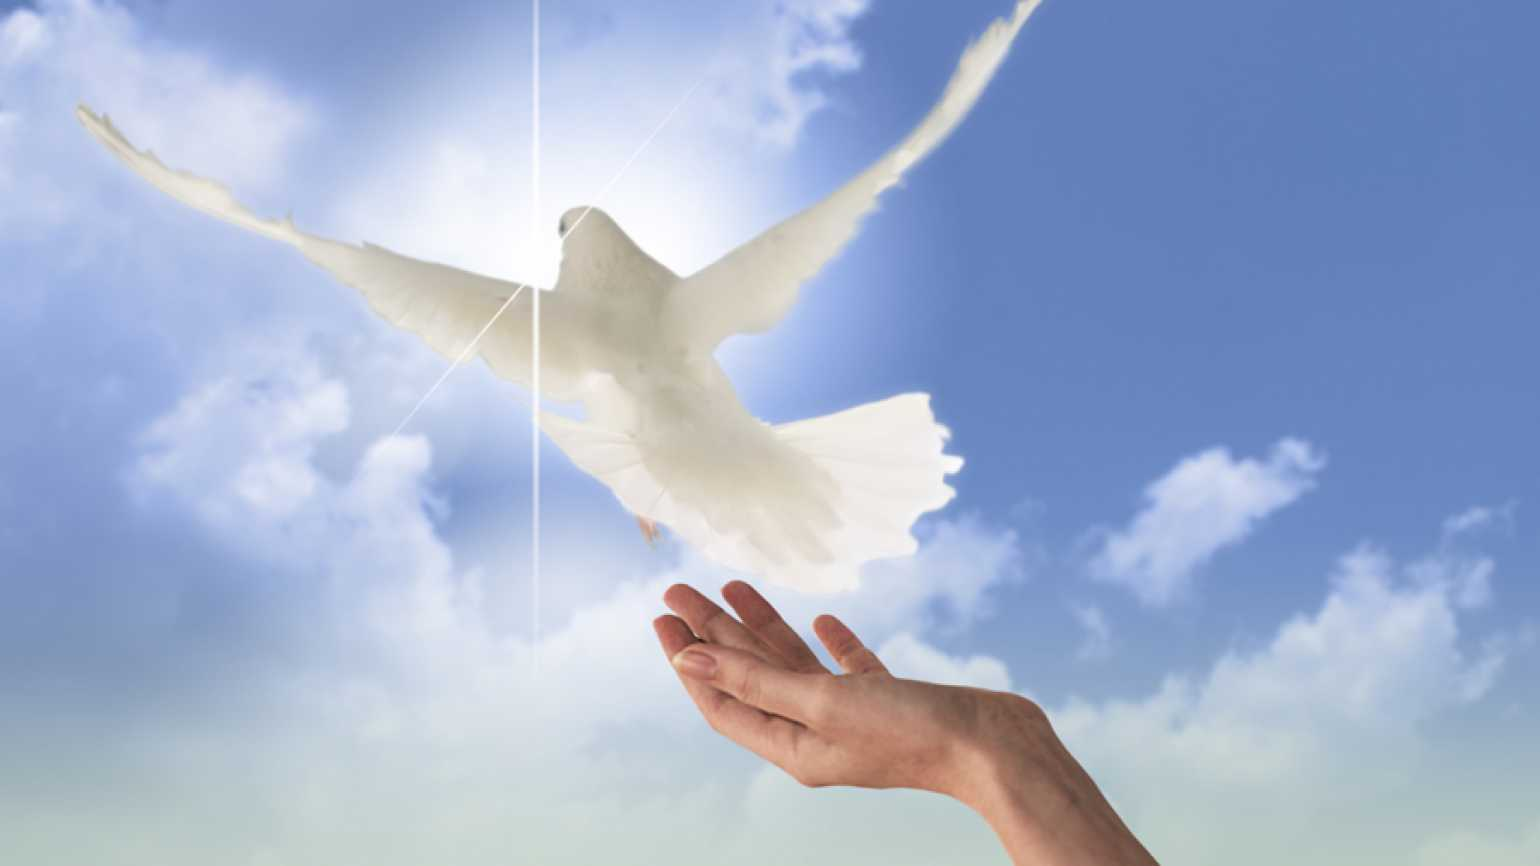 A hand releases a dove representing how to forgive when a loved one leaves, The Power of Forgivenss